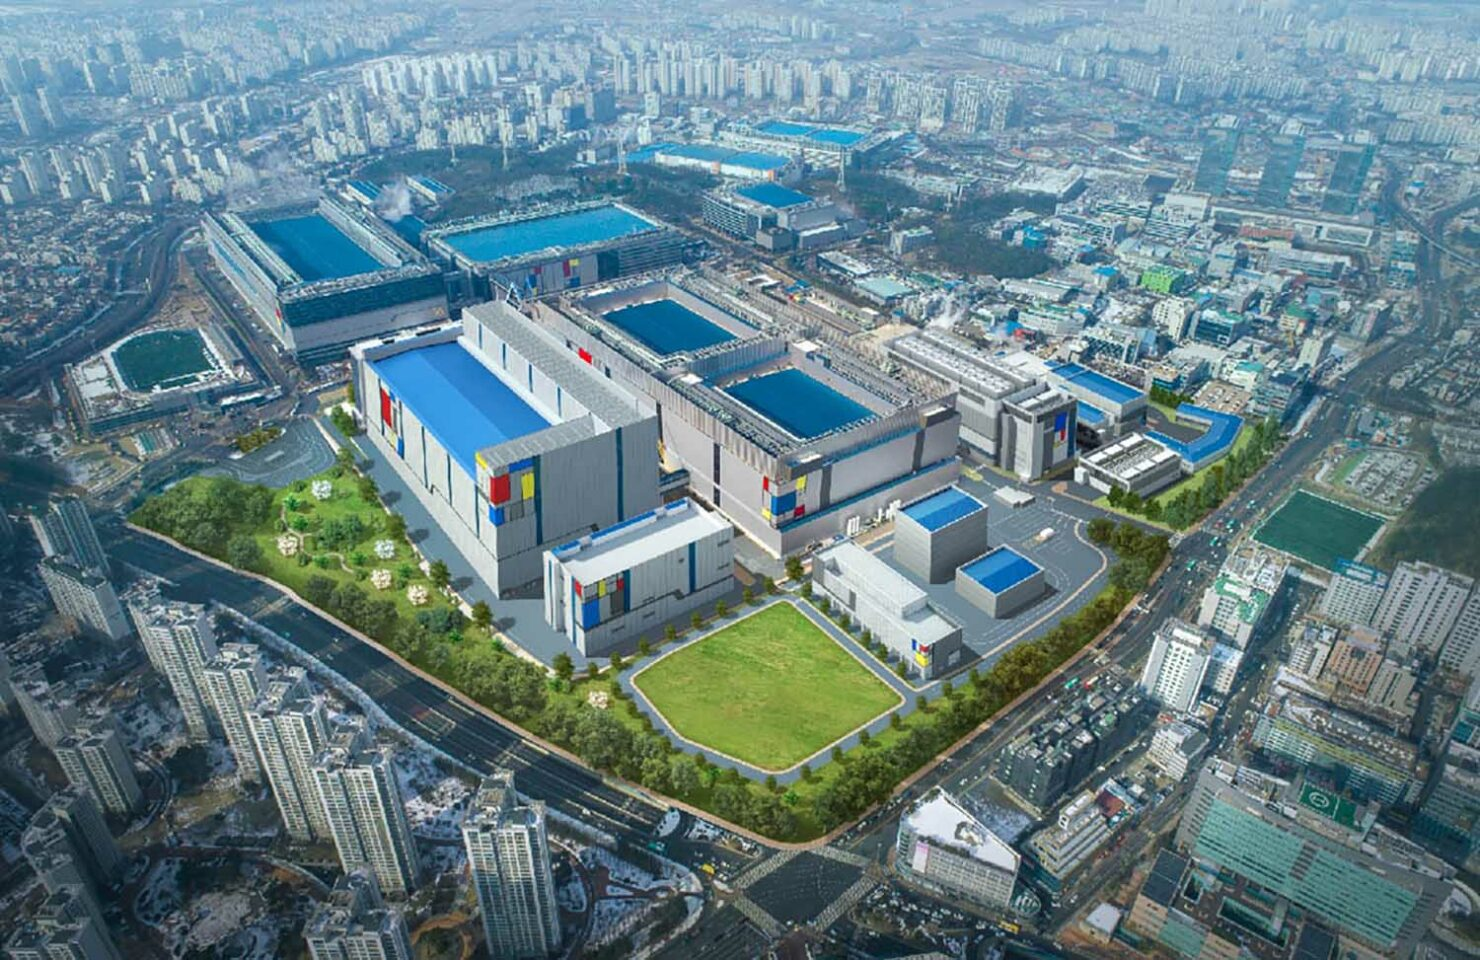 Samsung Reportedly Close to Finalizing Its $17 Billion Chip Plant in Texas in an Effort to Catch up to TSMC